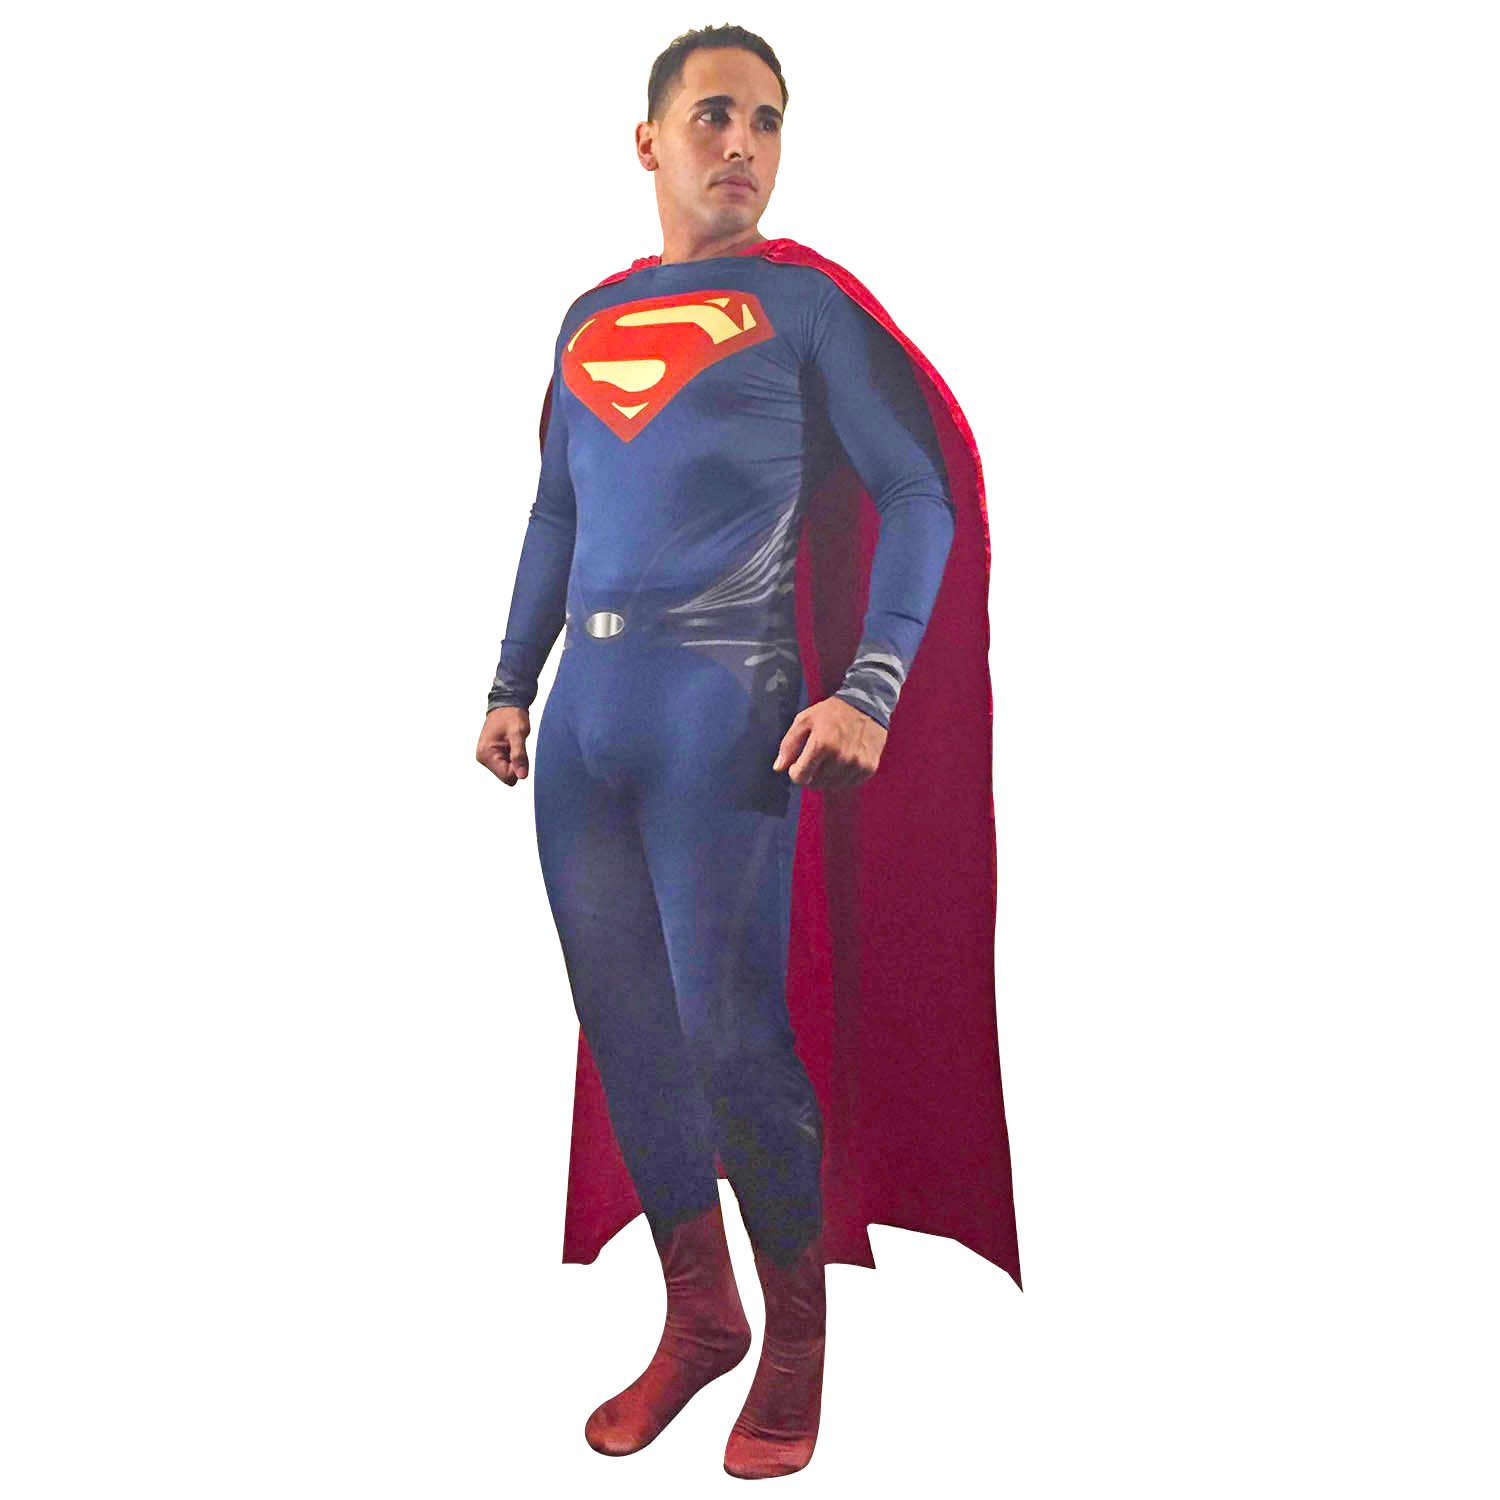 Amazon.com Adult Superman of Steel Costume Superhero Cosplay Zentai Cape (3X-Large Red) Clothing  sc 1 st  Amazon.com & Amazon.com: Adult Superman of Steel Costume Superhero Cosplay Zentai ...